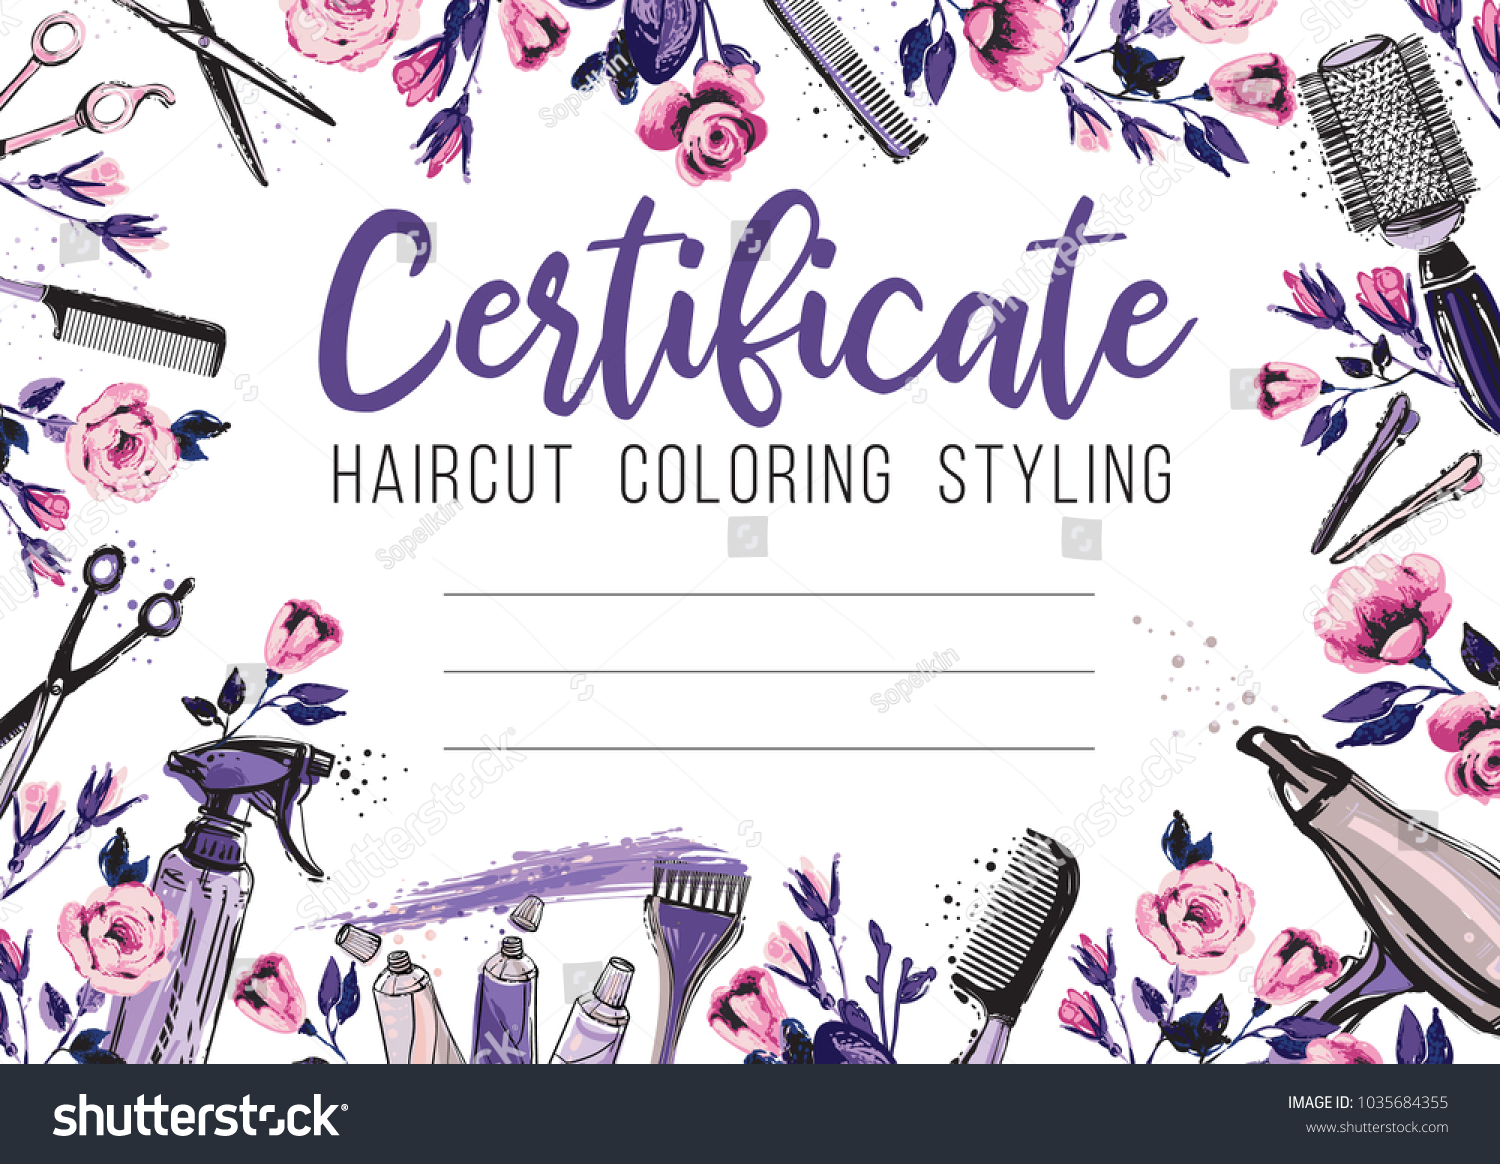 Hair Cut Rose Flower Hairdressing Business Stock Vector 1035684355 ...